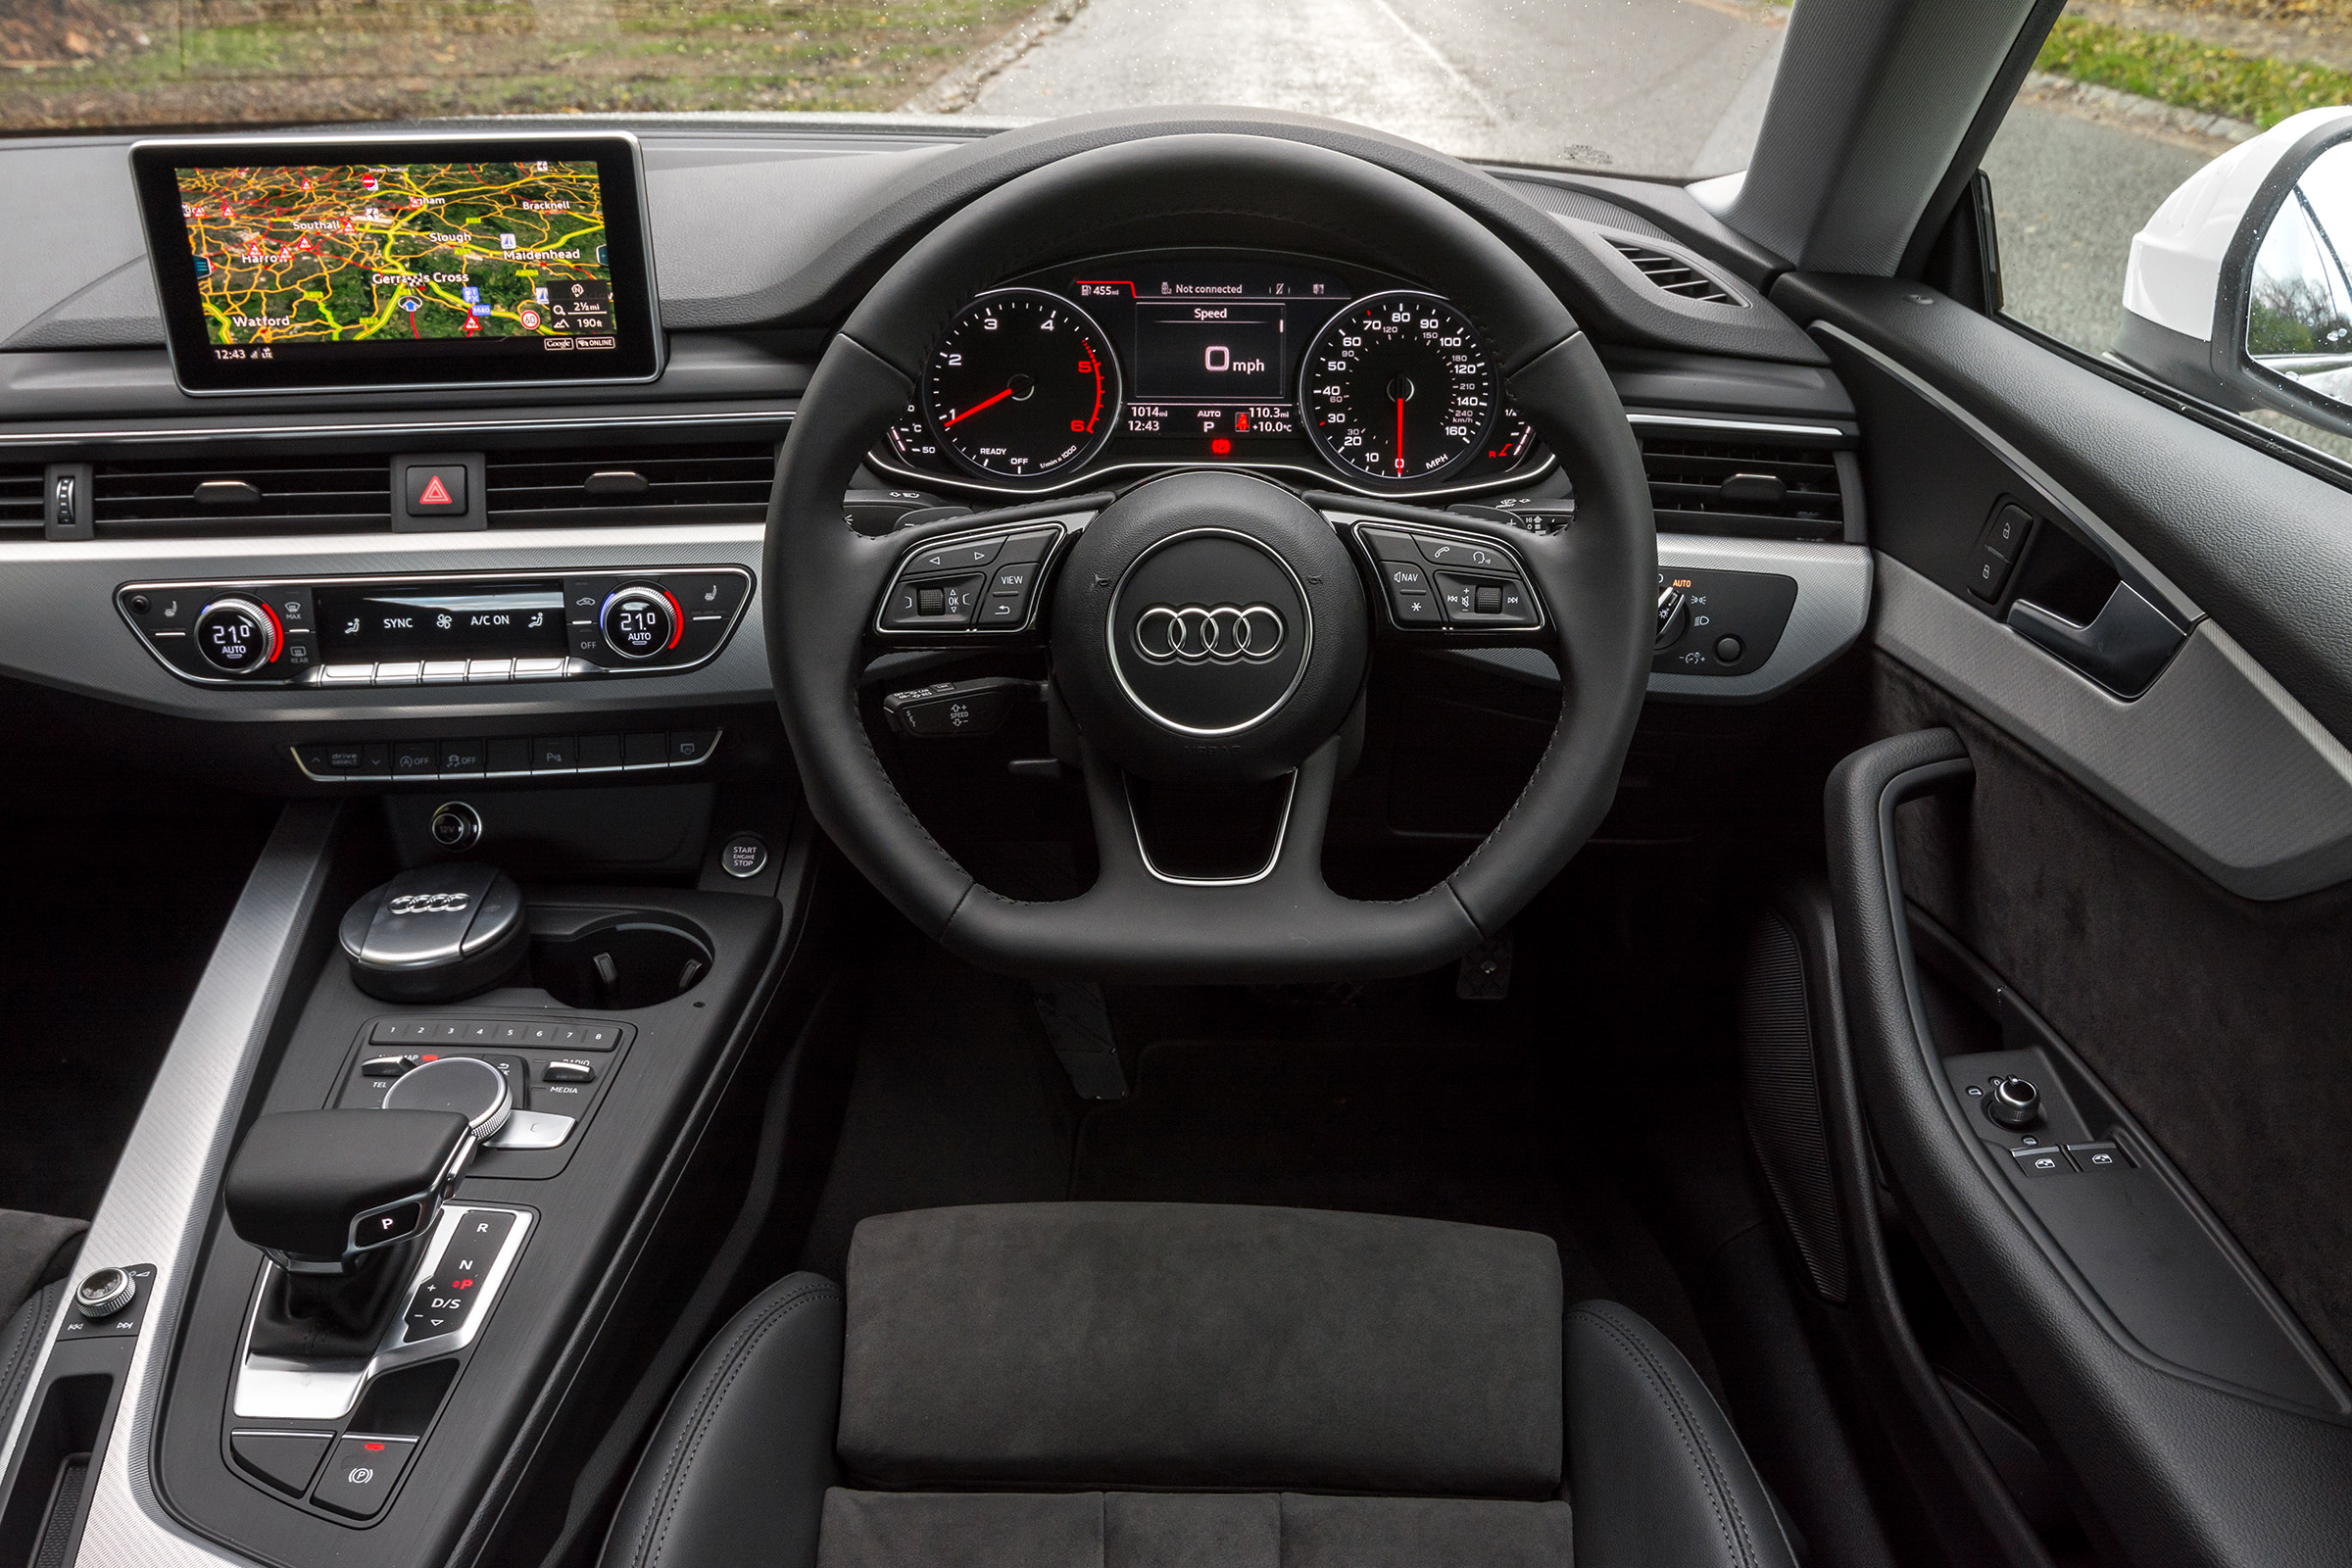 2017 audi a5 coupe interior cockpit and dash gallery. Black Bedroom Furniture Sets. Home Design Ideas